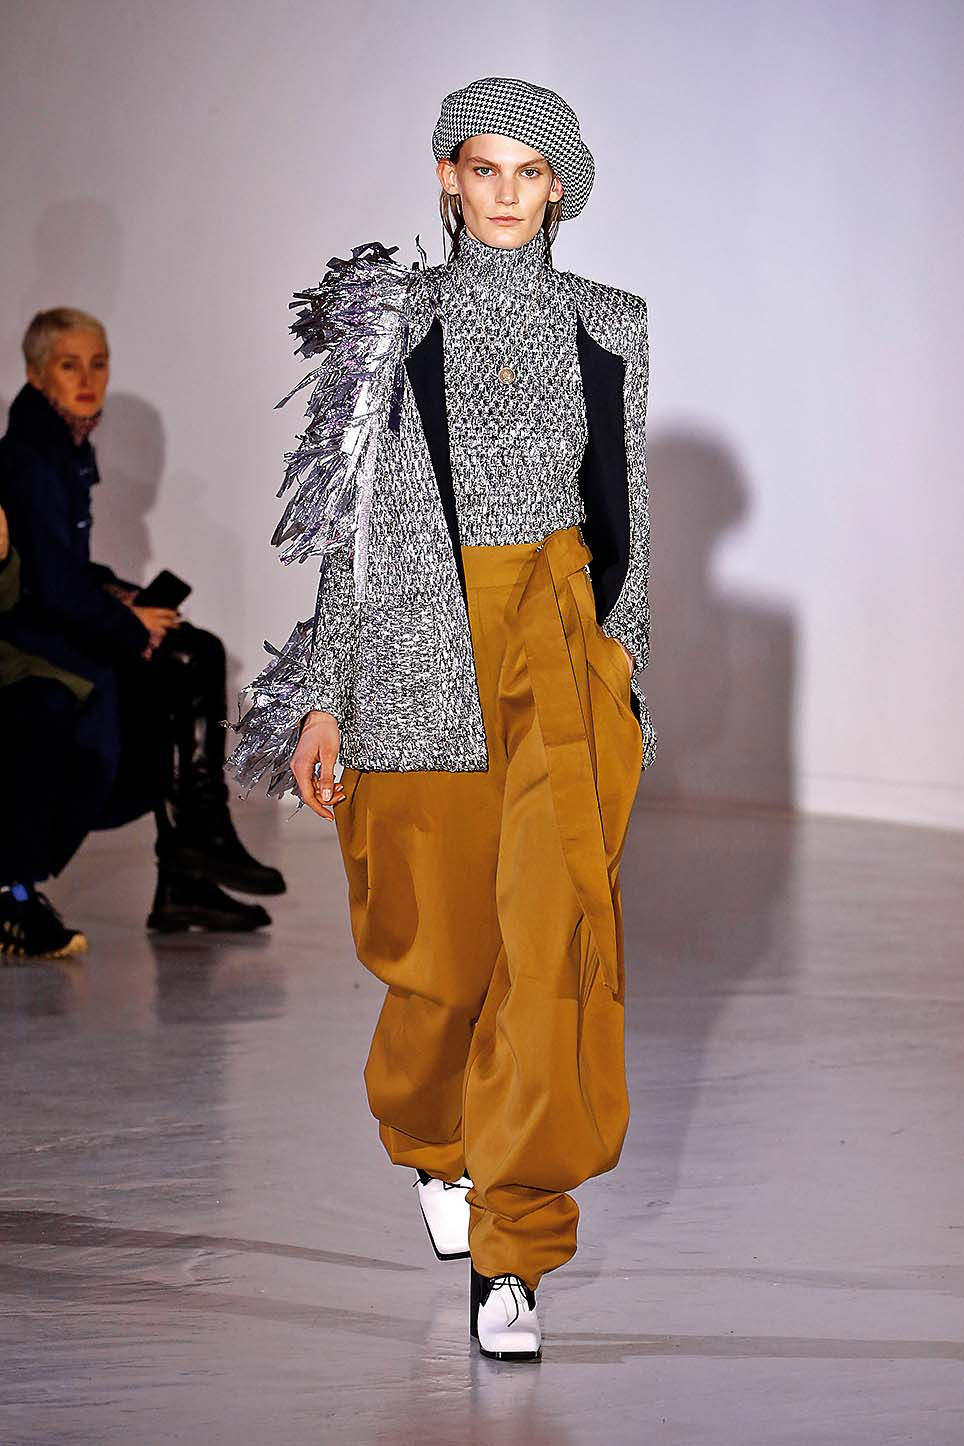 PARIS, FRANCE - MARCH 1: A model walks the runway during the Wanda Nylondesigned by Nana Aganovich show as part of the Paris Fashion Week Womenswear Fall/Winter 2017/2018 on March 1, 2017 in Paris, France. (Photo by Estrop/Getty Images)